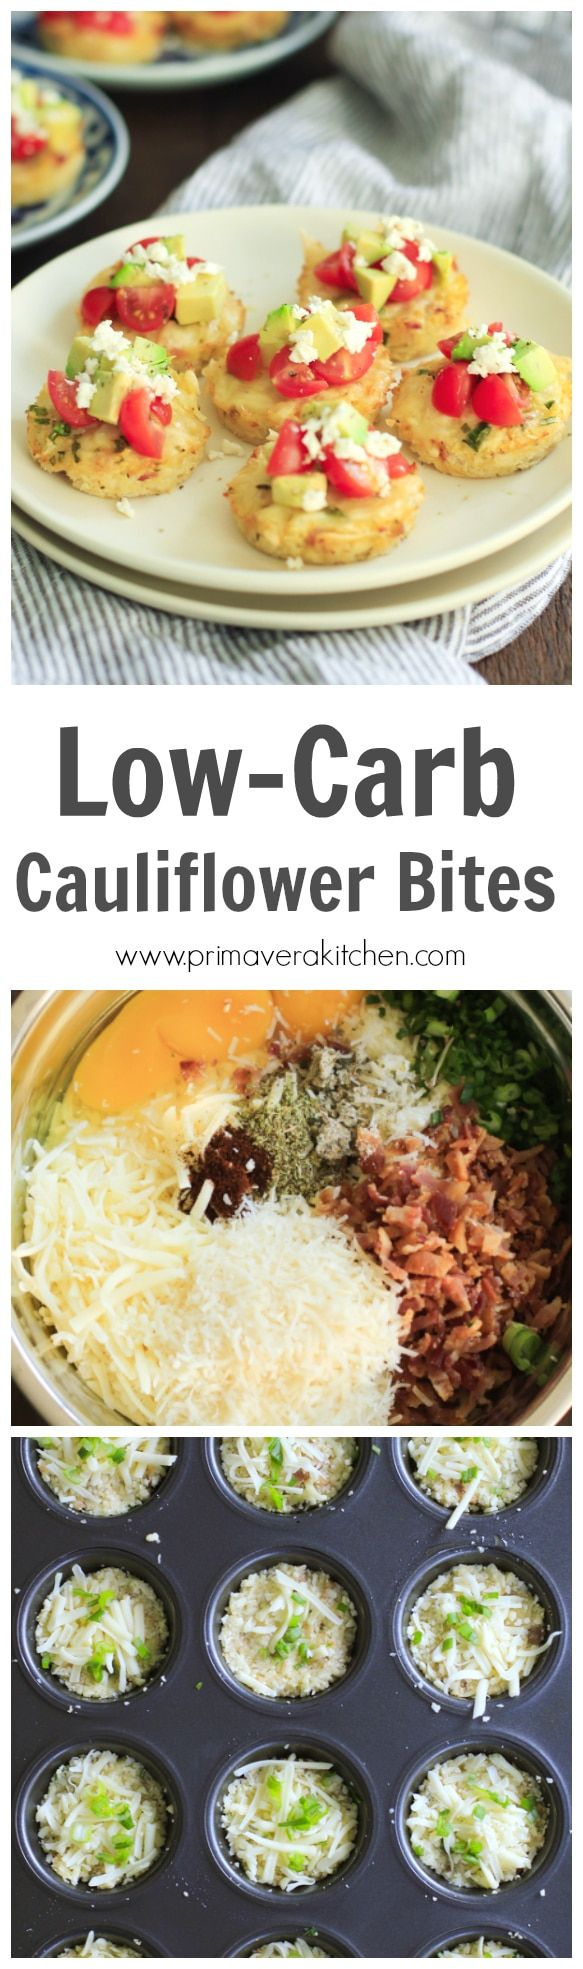 LowCarb Cauliflower Bites Recipe TasteBuds